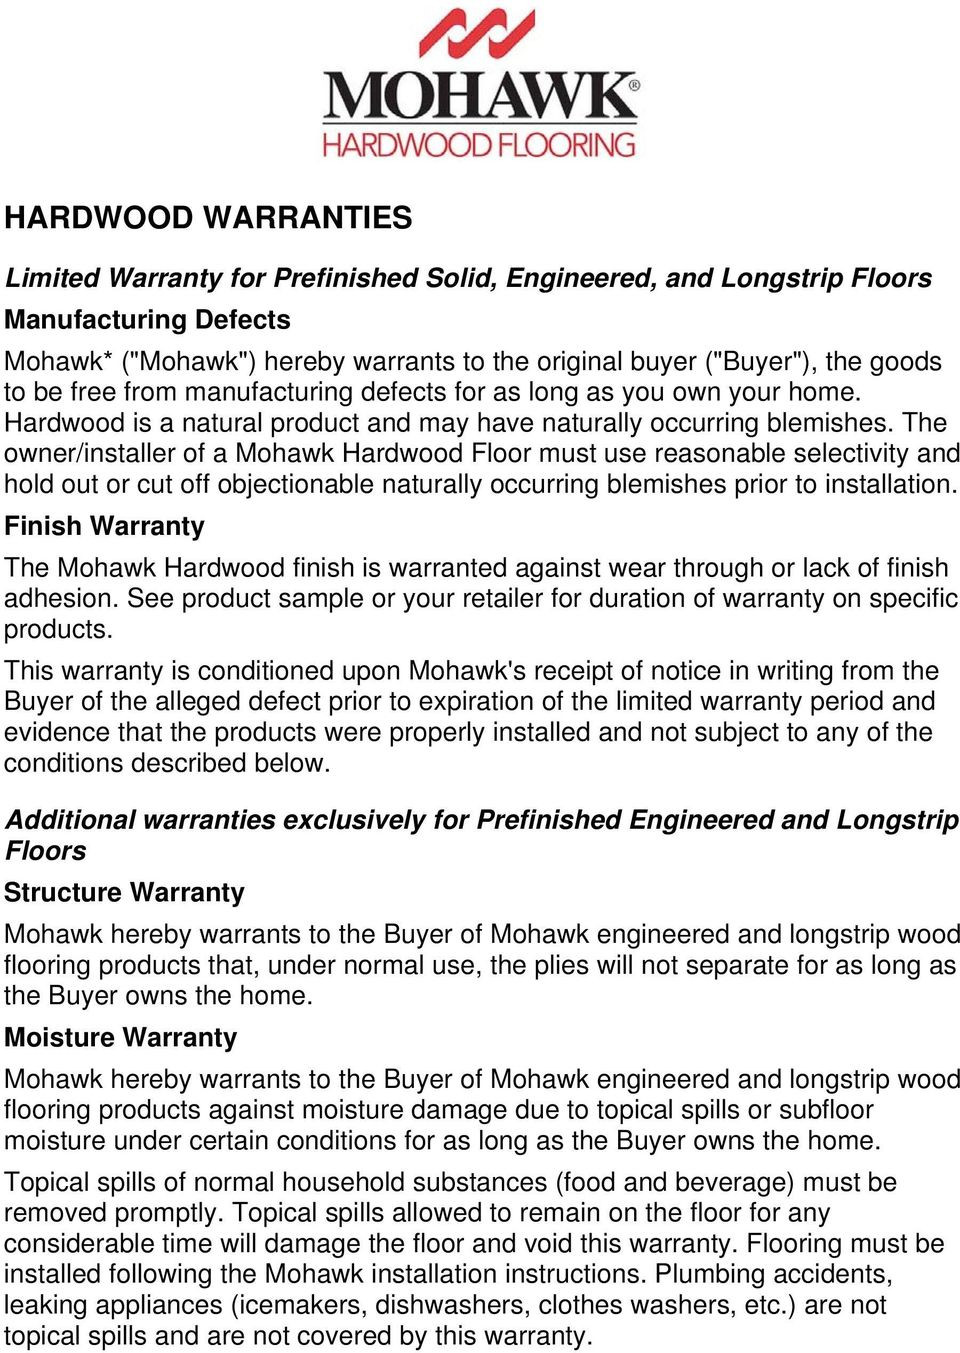 mohawk hardwood flooring distributors of hardwood warranties limited warranty for prefinished solid with regard to the owner installer of a mohawk hardwood floor must use reasonable selectivity and hold out